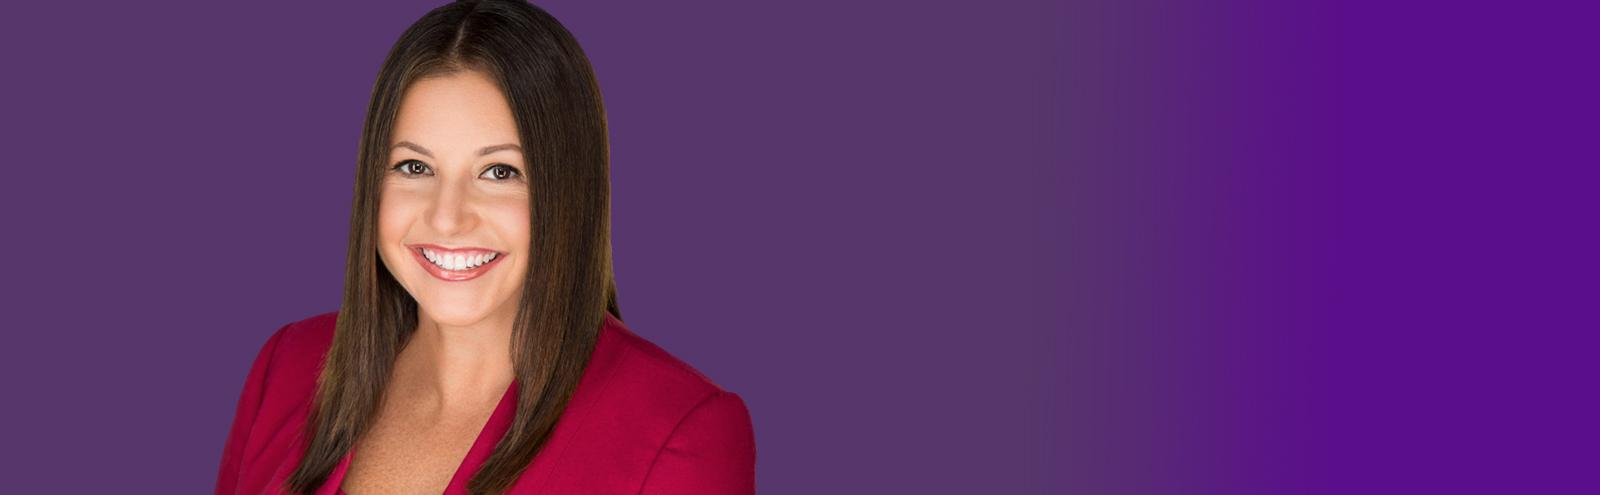 woman wearing a red blazer with purple background